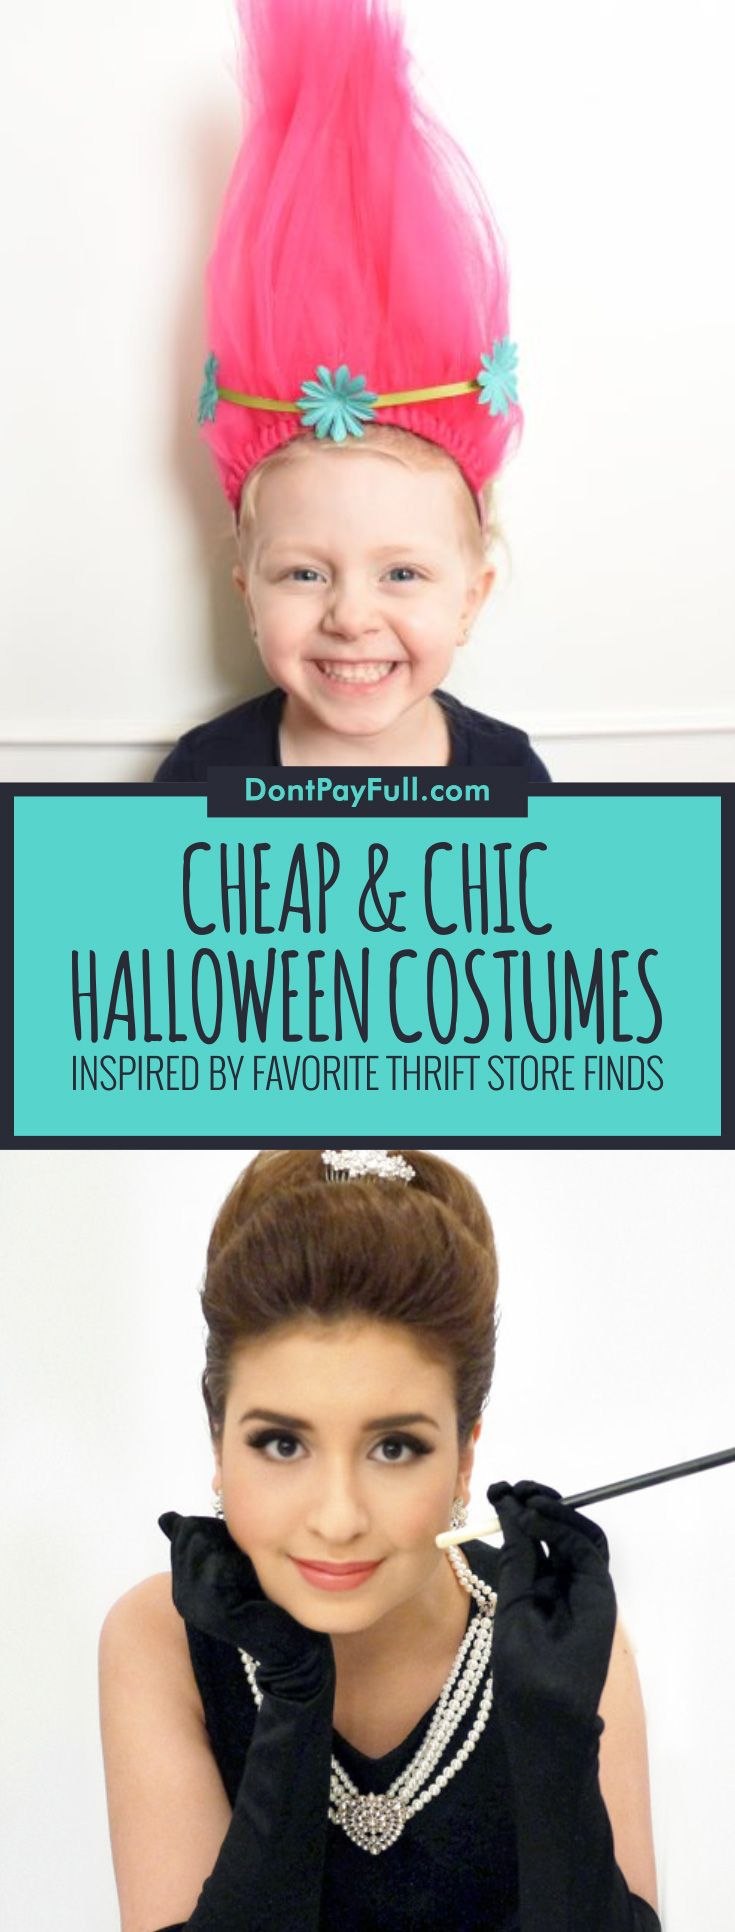 1052 best diy halloween costumes images on pinterest costume 1052 best diy halloween costumes images on pinterest costume ideas carnivals and costumes solutioingenieria Gallery